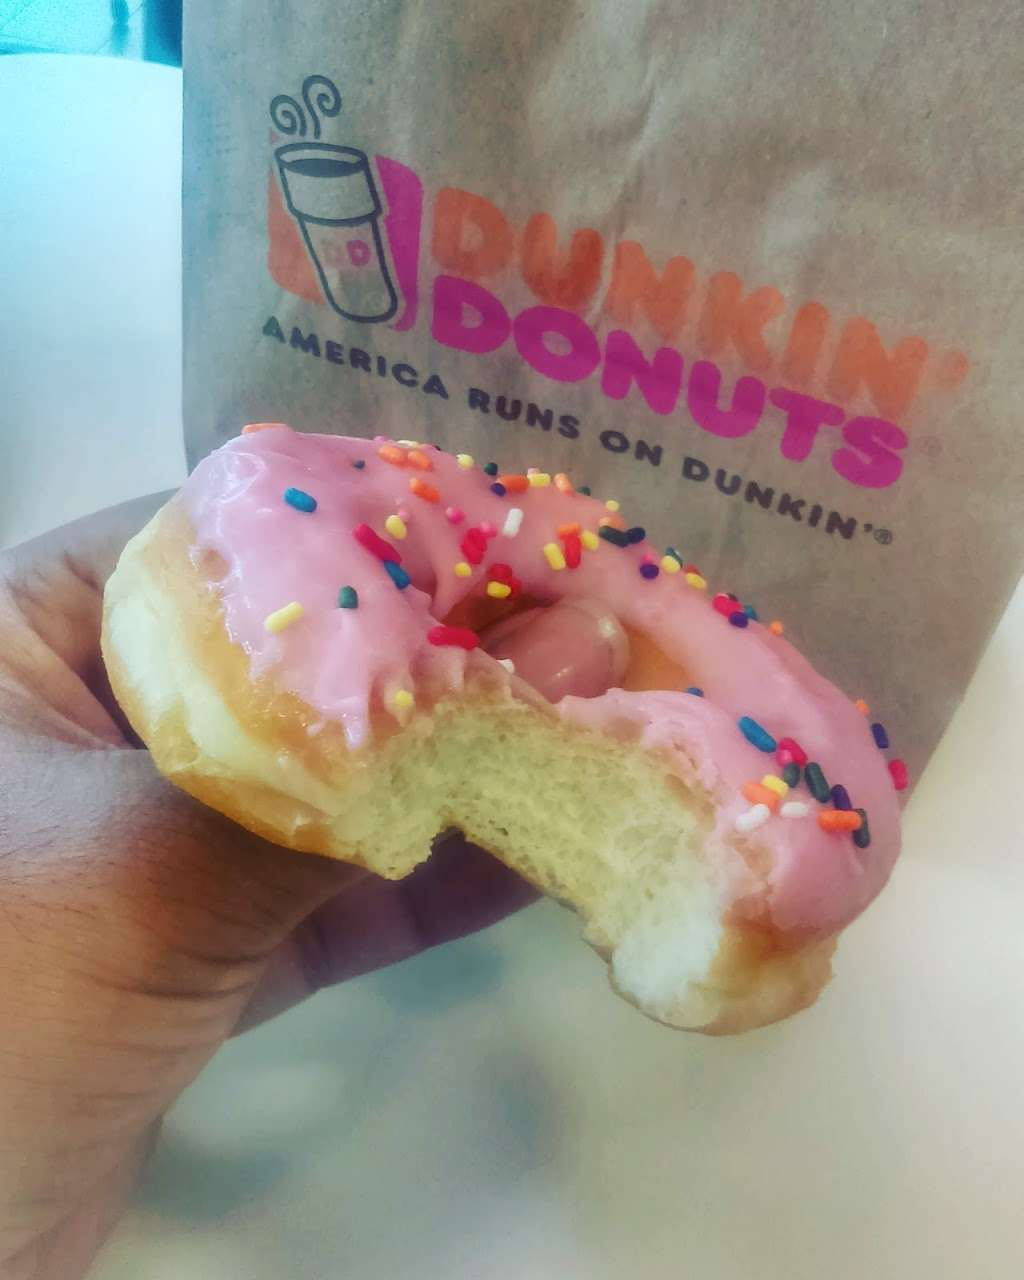 Dunkin Donuts - cafe  | Photo 7 of 7 | Address: 10450 Wiles Rd, Coral Springs, FL 33076, USA | Phone: (954) 255-9642